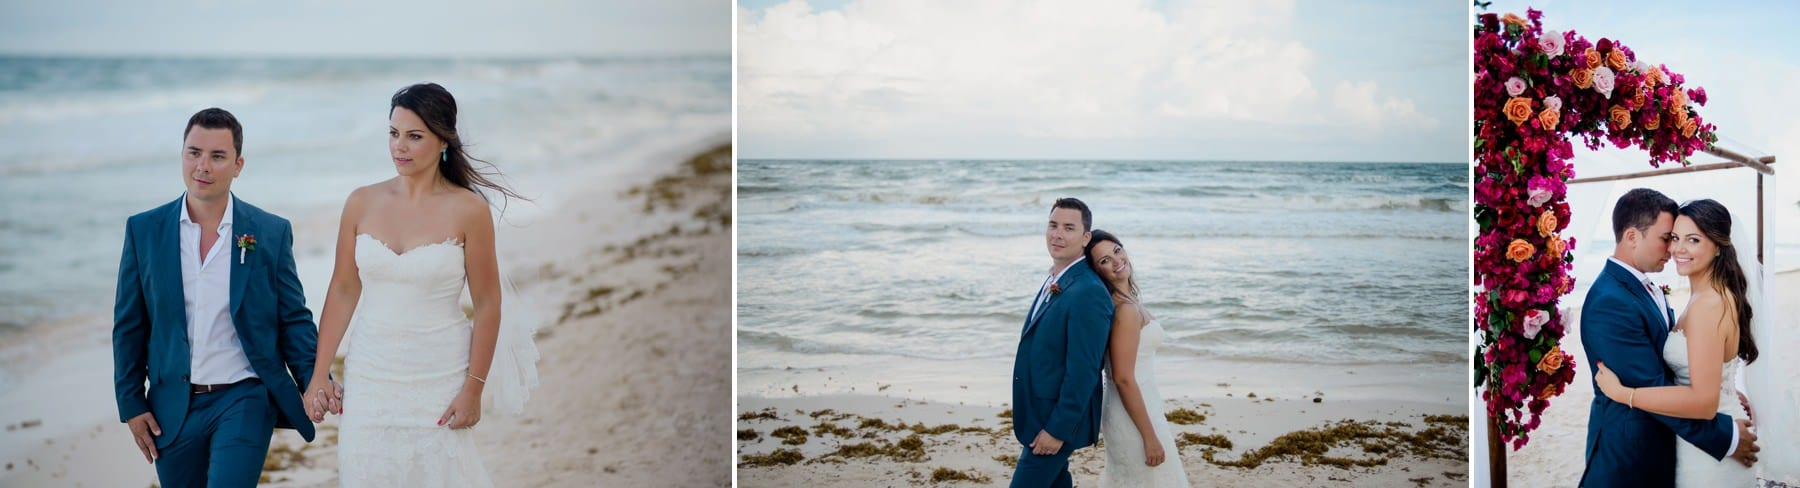 tulum-wedding-photographer-94